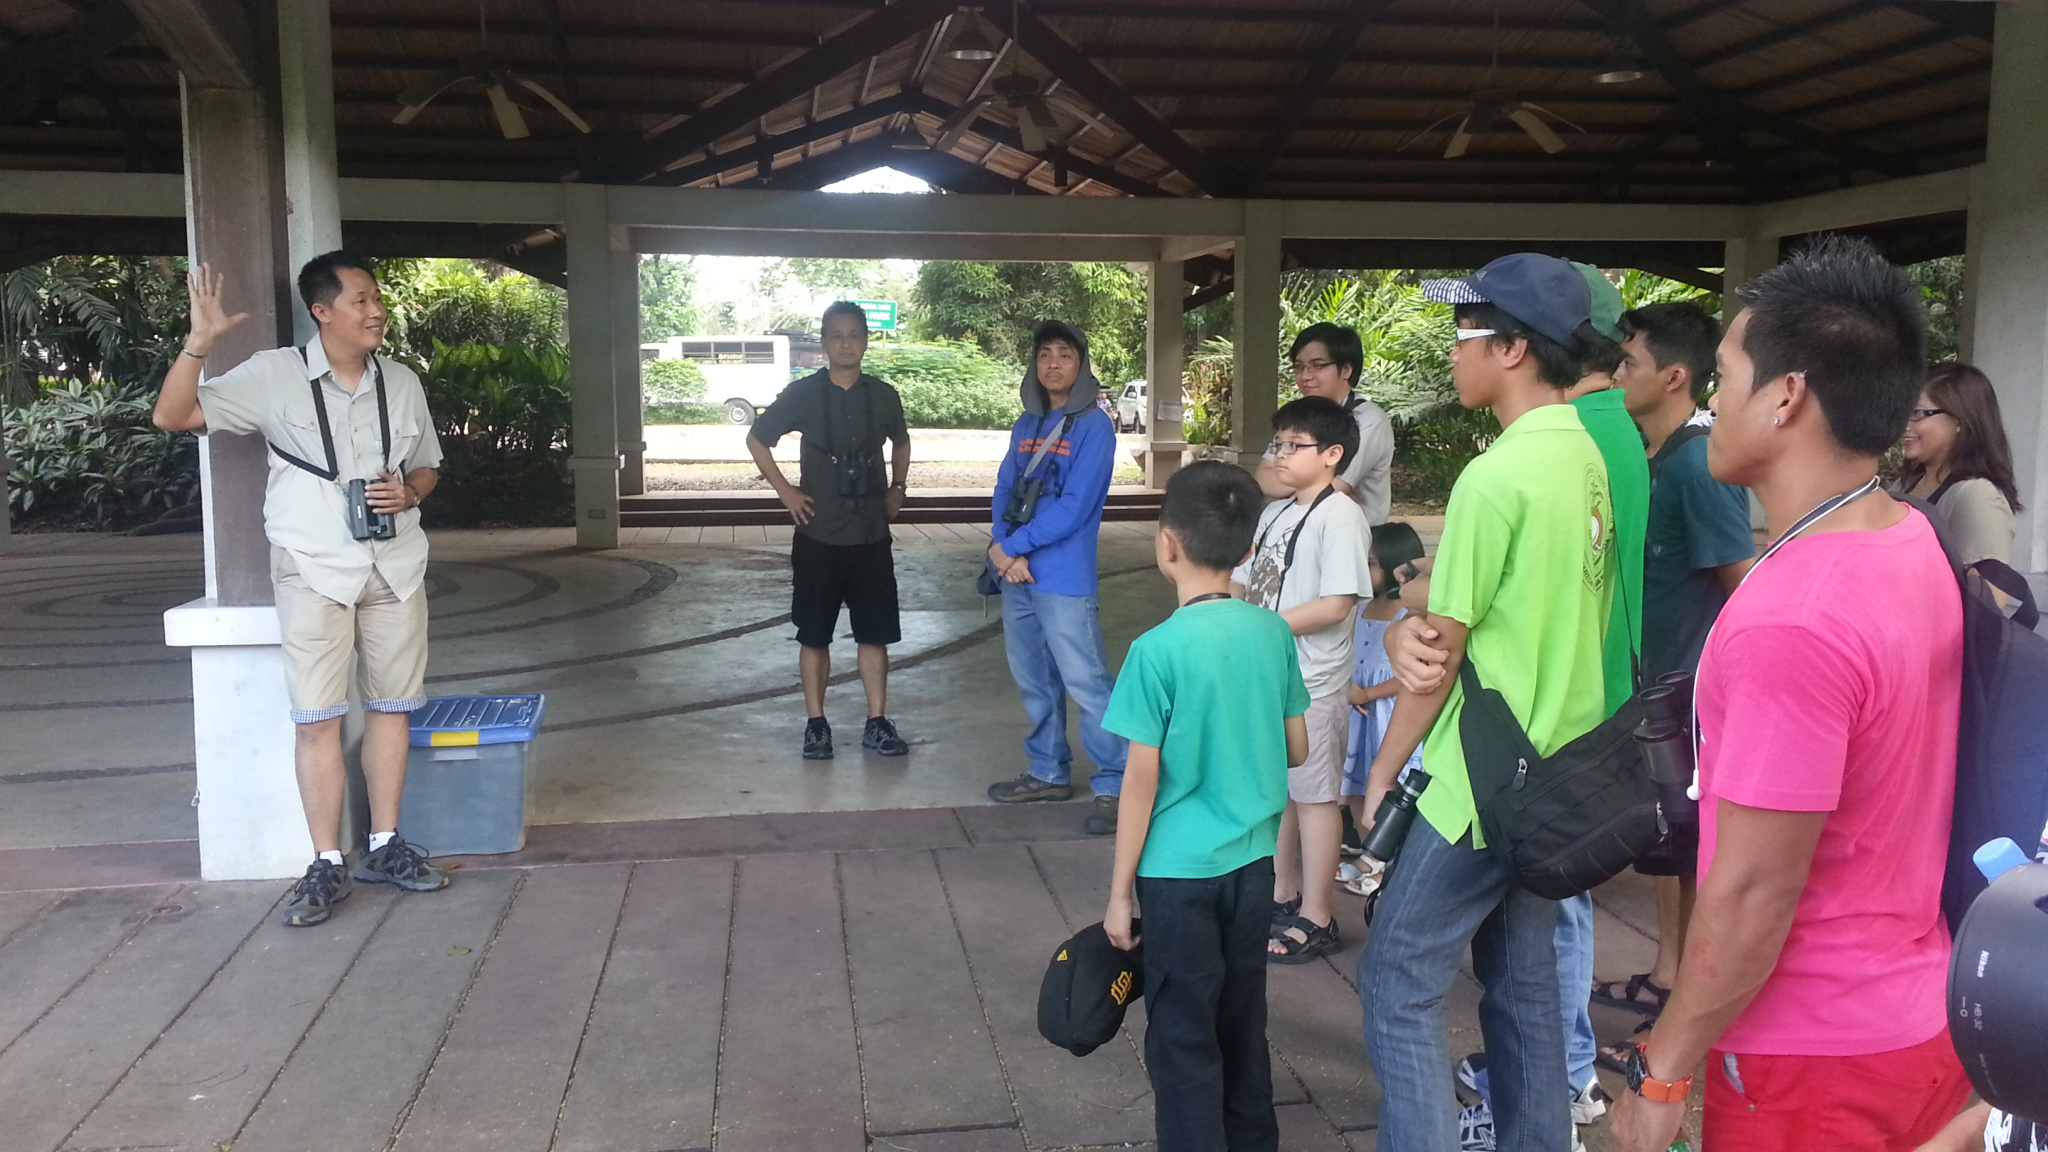 Mike giving the introductory talk about birding. Photo by Jun Osano.